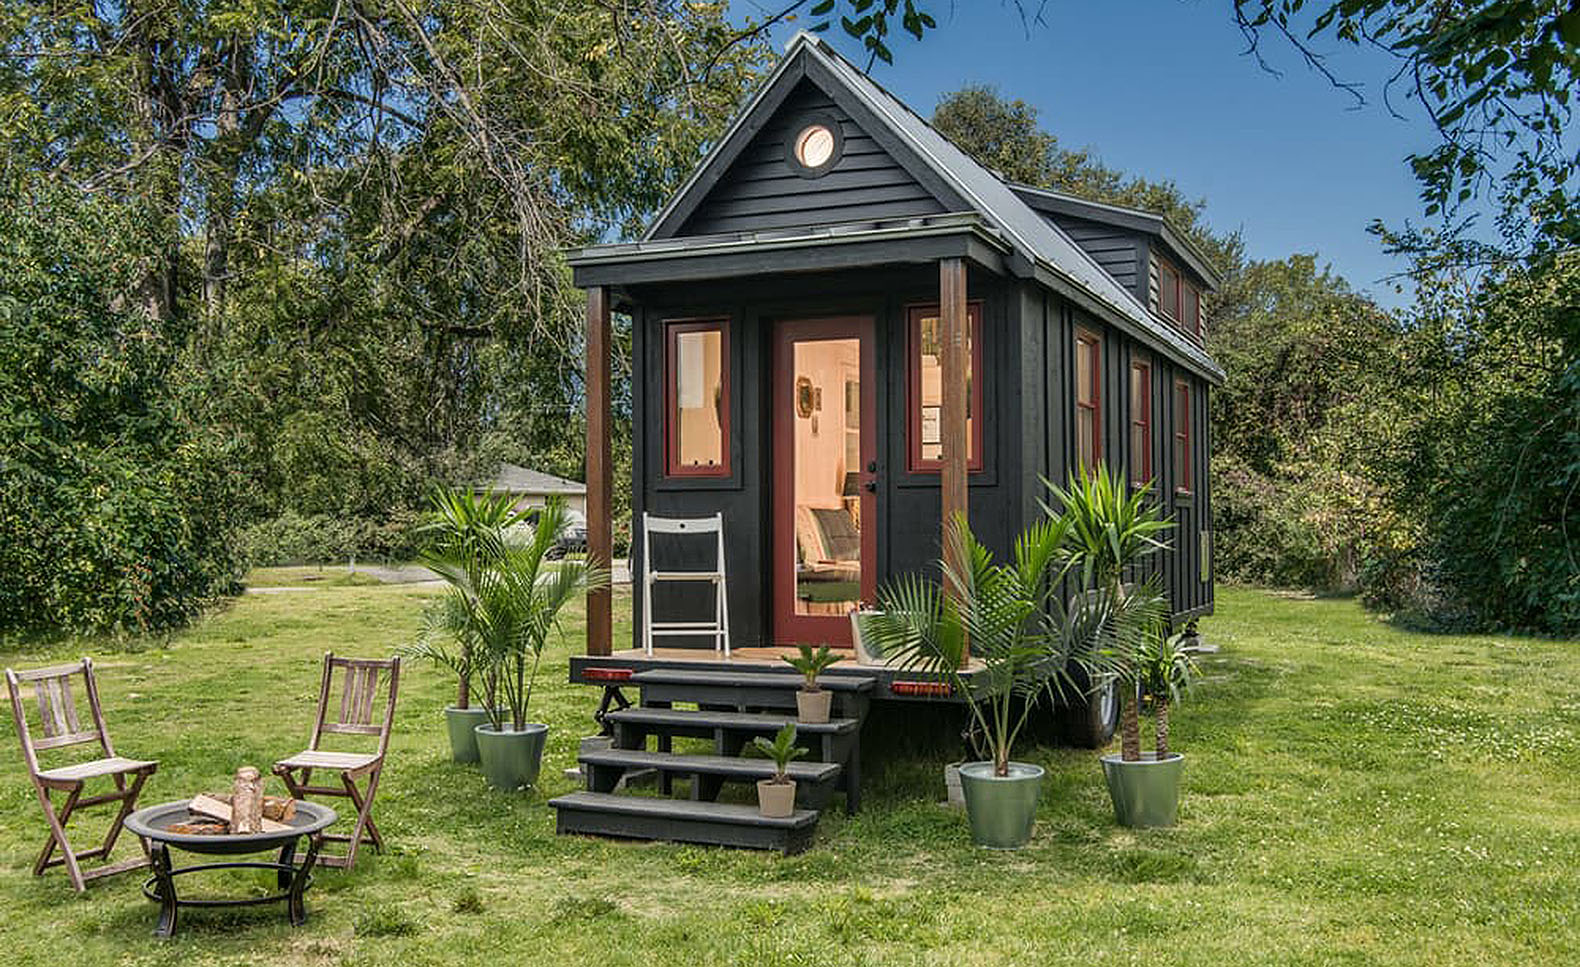 9 tips for building a small house on a budget tiny homes ltd - Little Homes